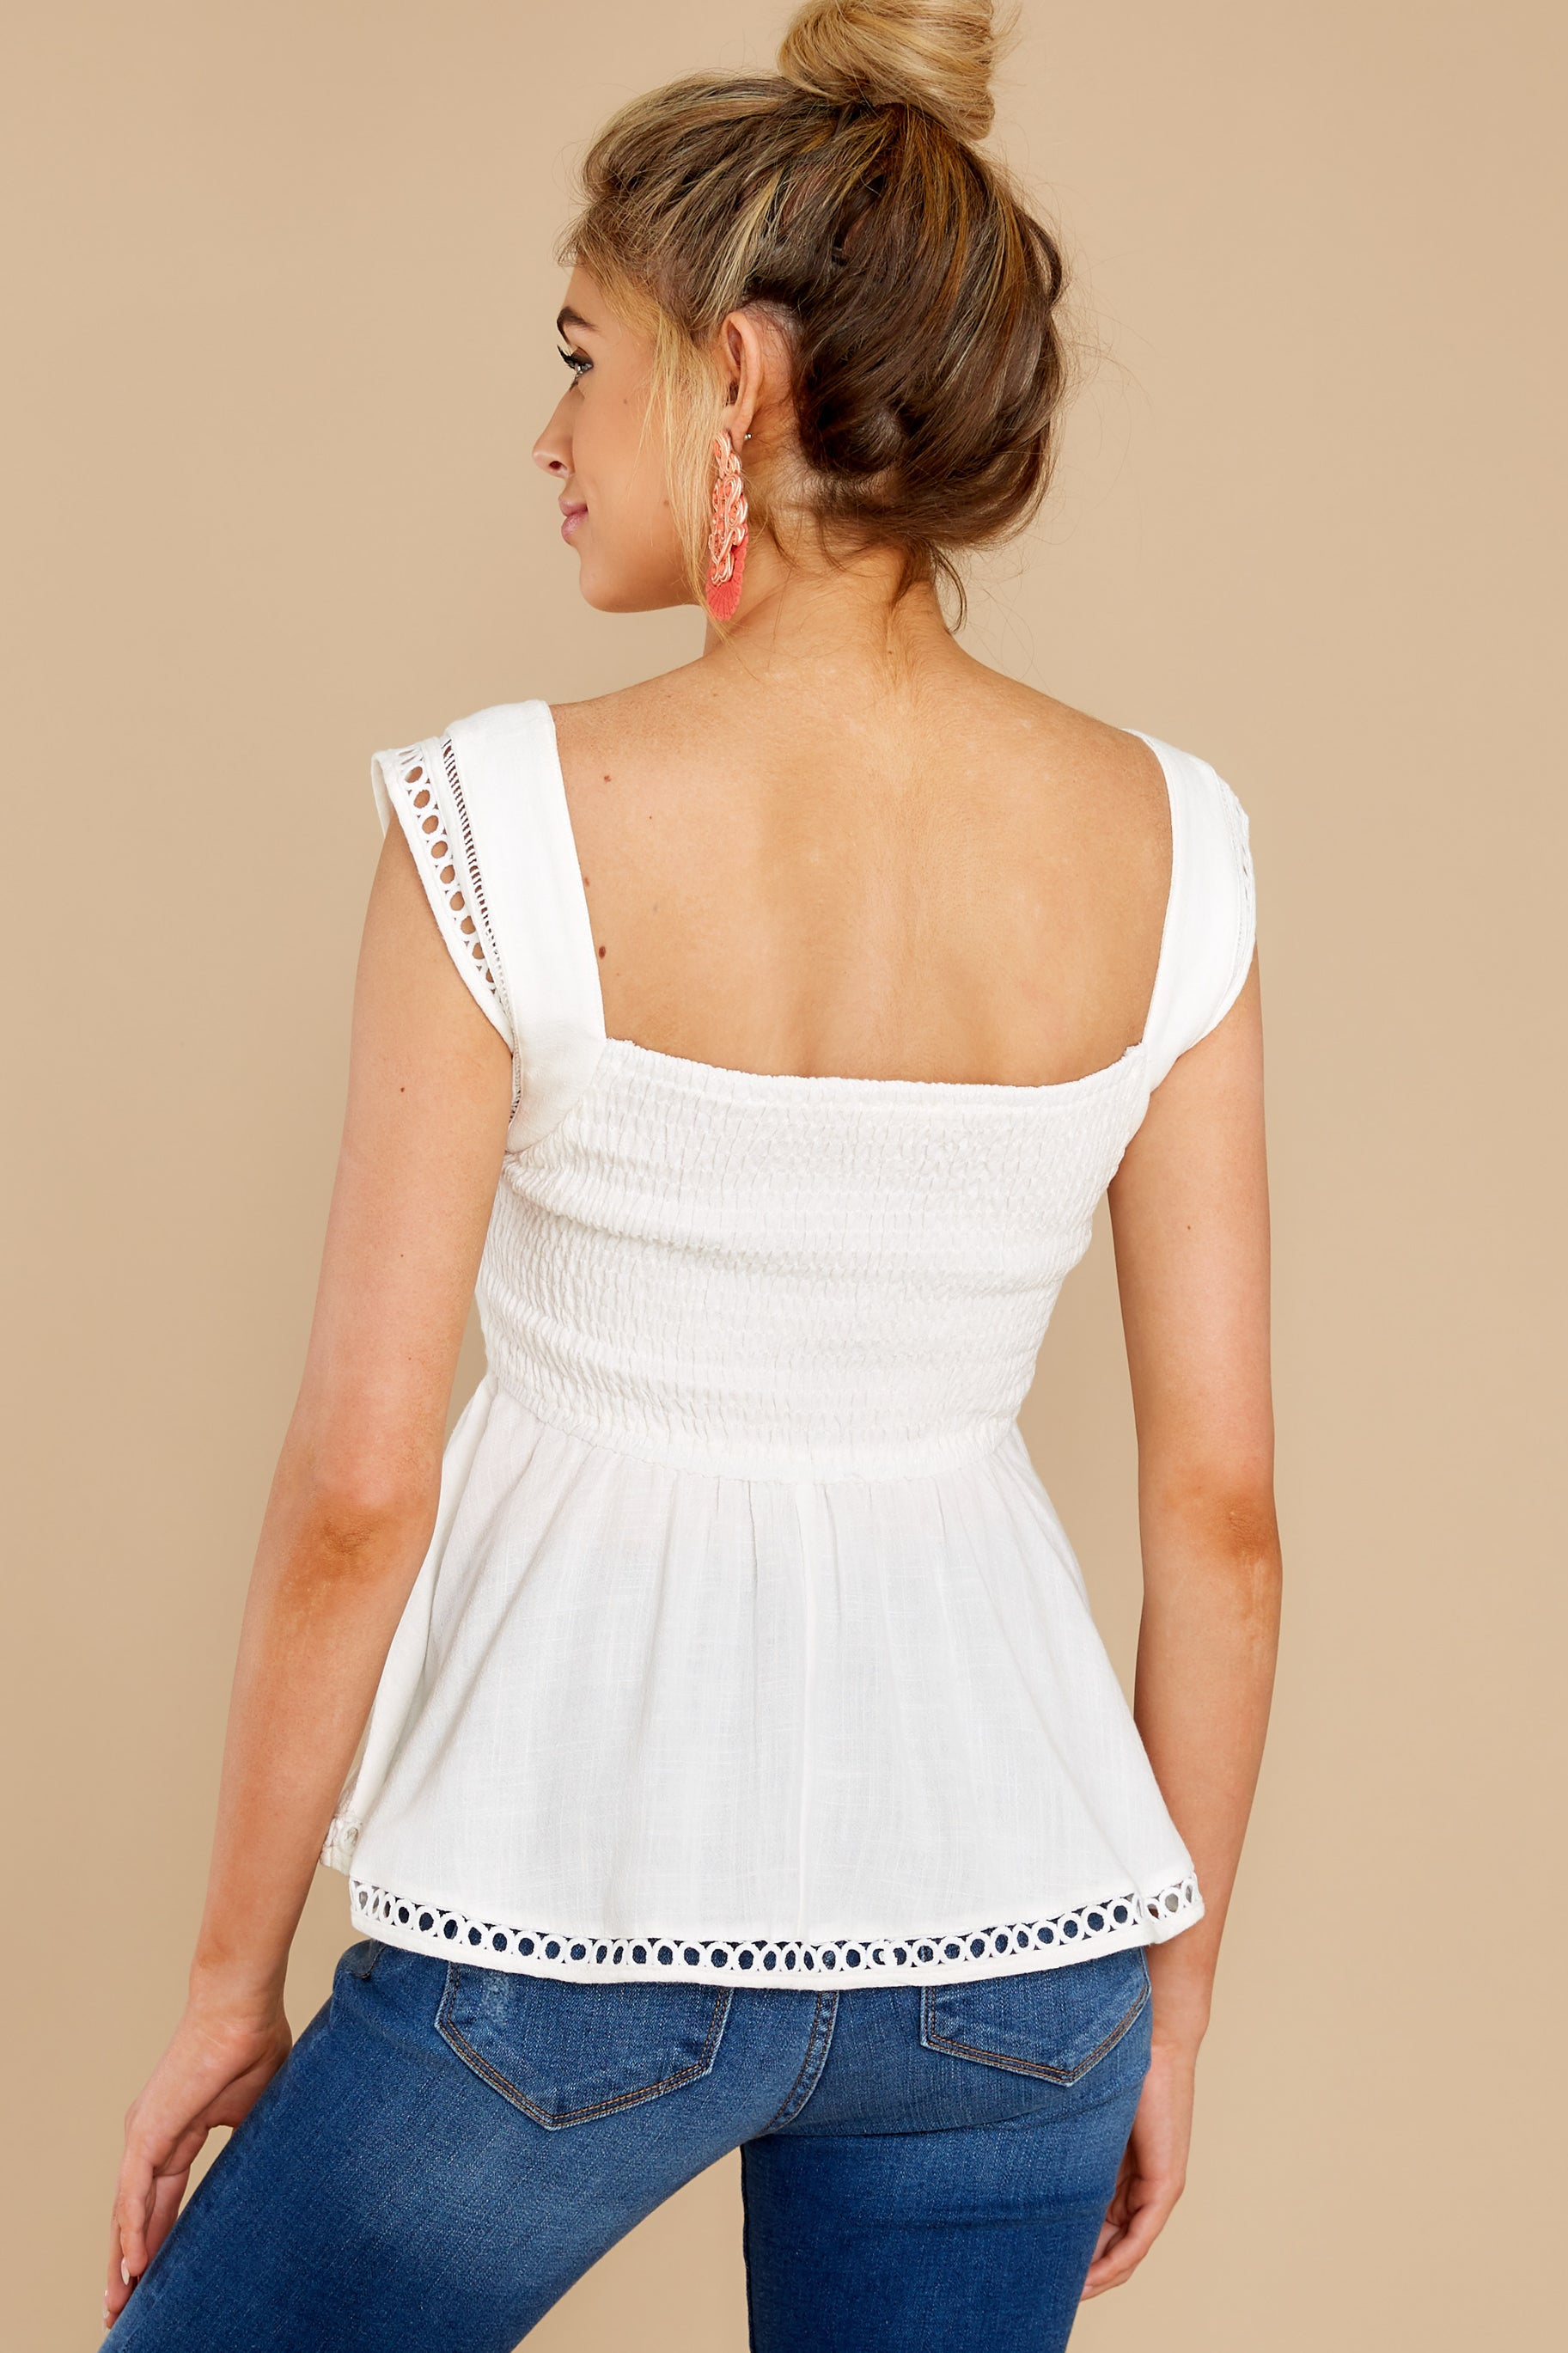 8 Looking Divine White Eyelet Top at reddress.com